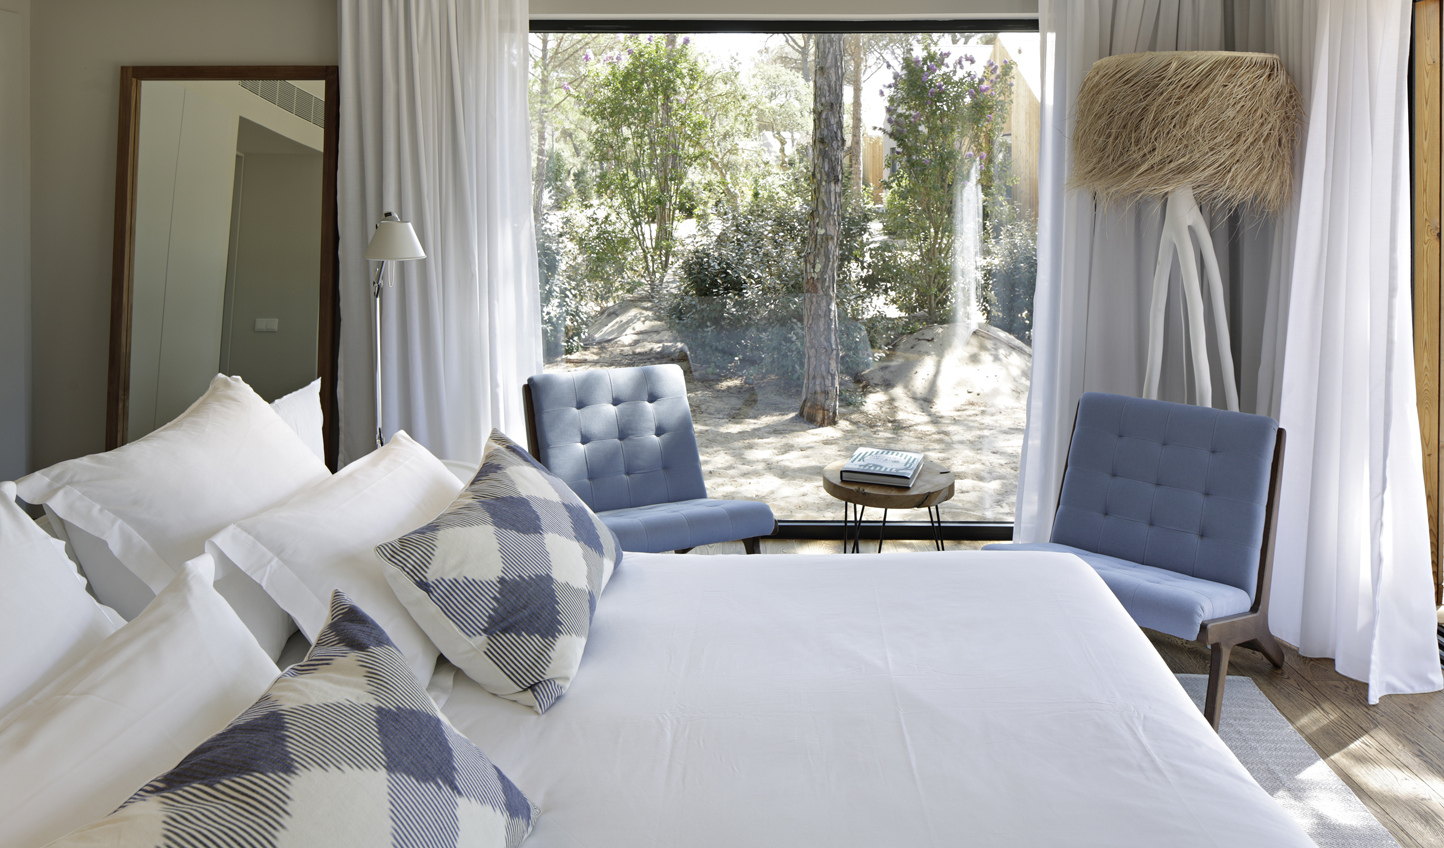 Wake up to views over the tranquil gardens